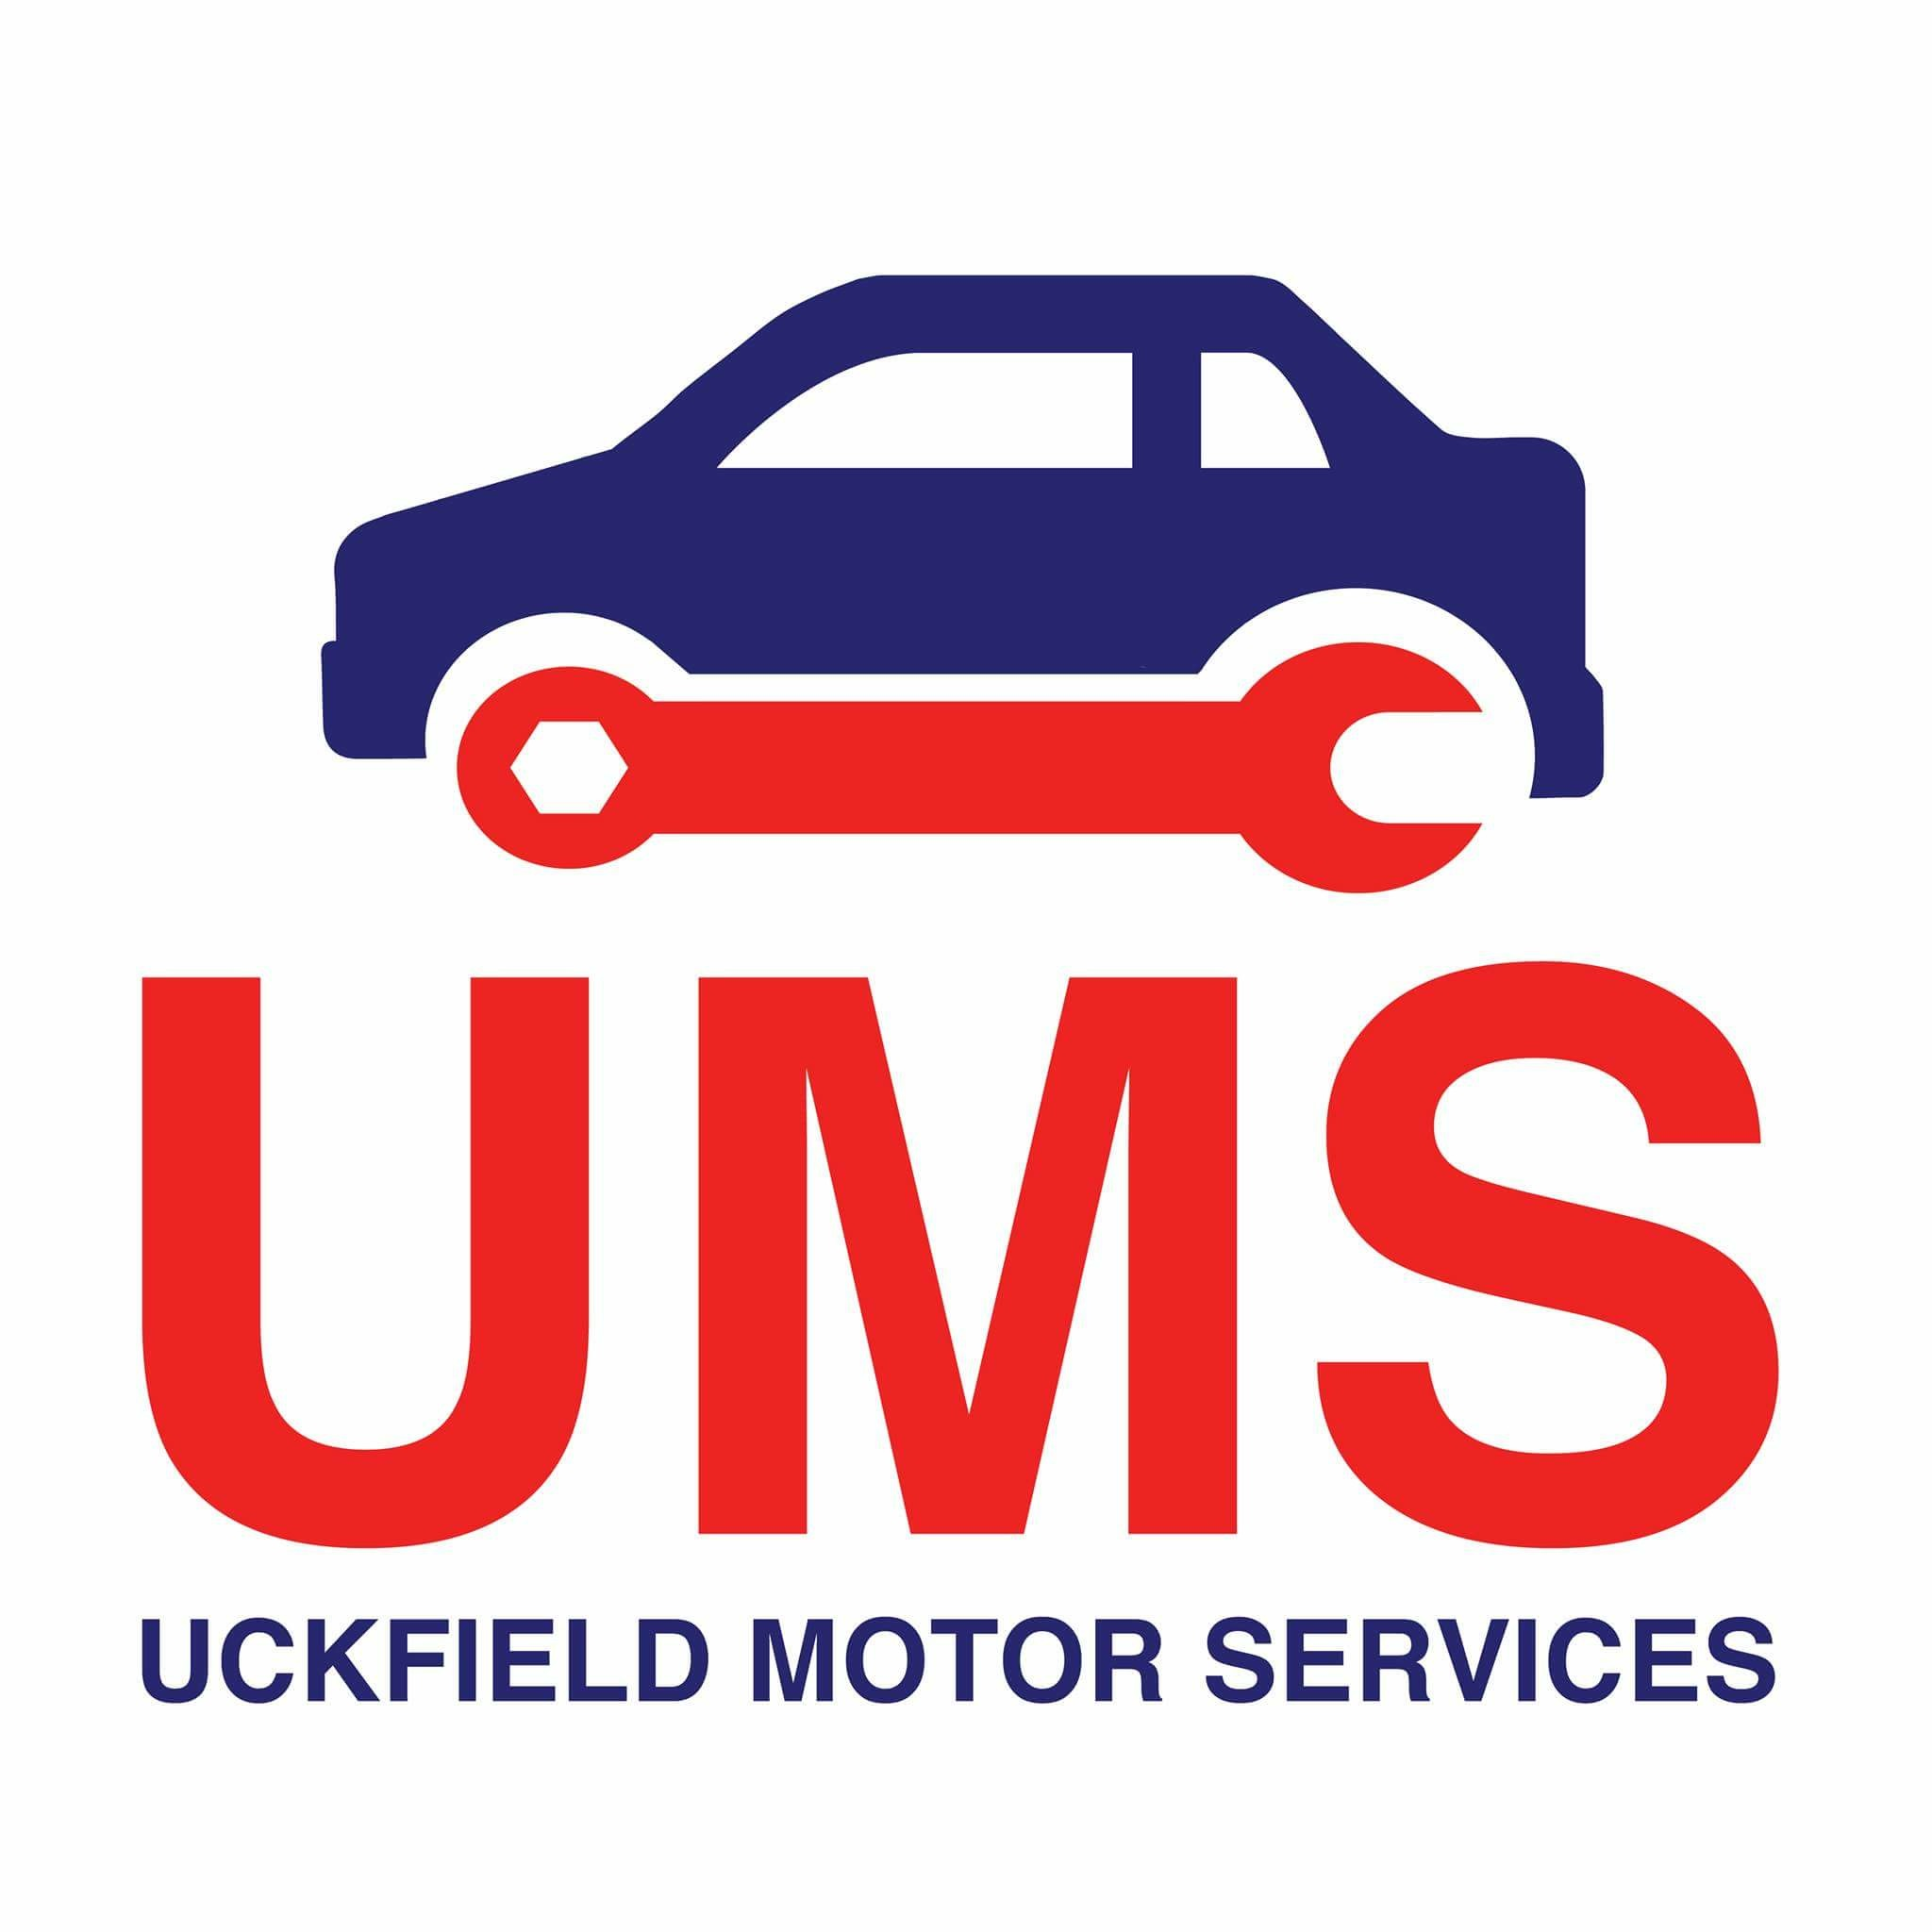 Uckfield Motor Services